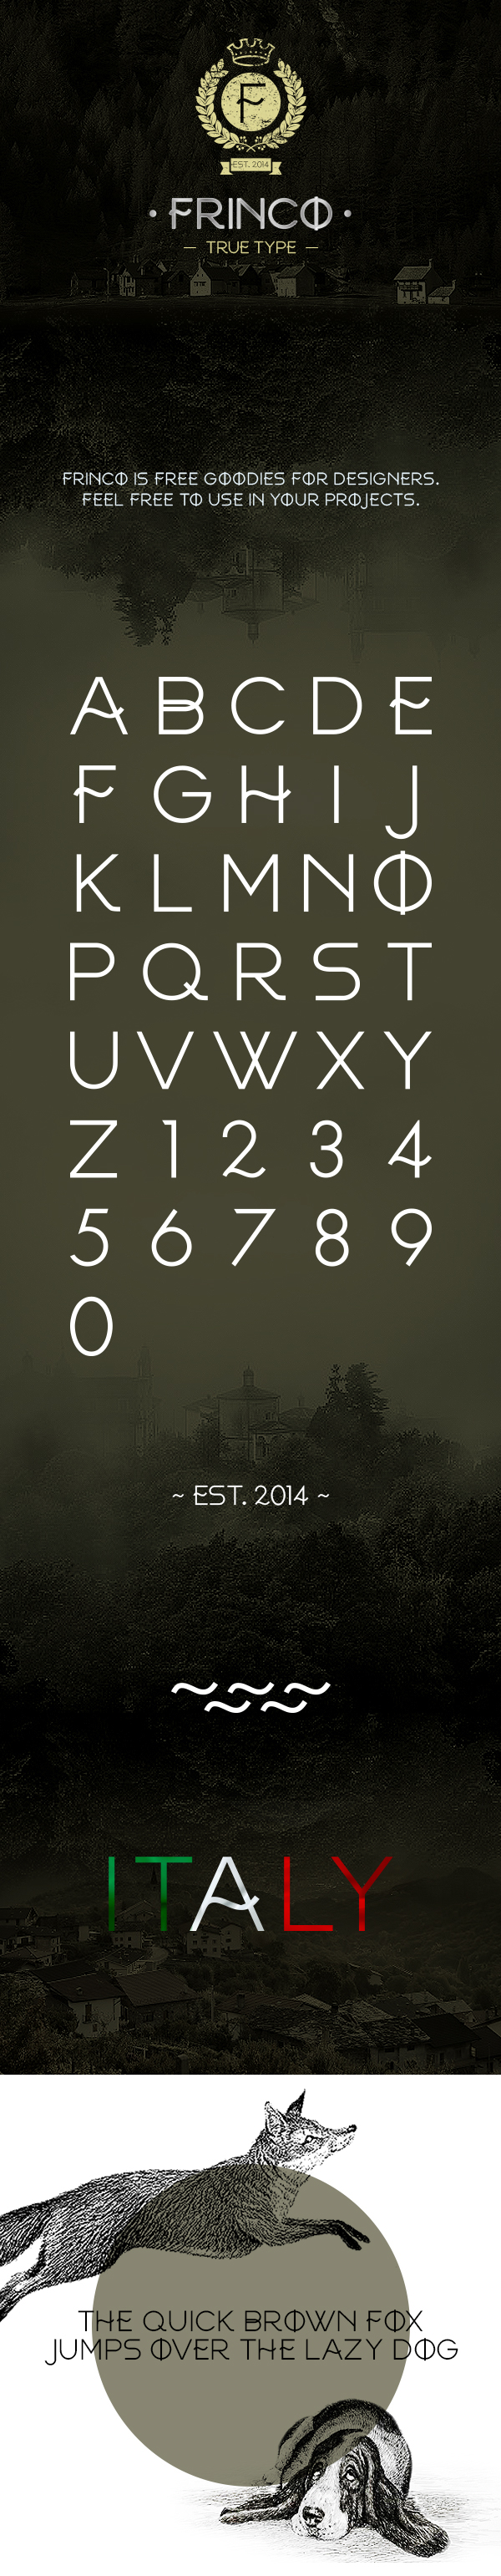 FRINCO by Free Font by Ryan Pyae in 20个2014年10月整理的最新时尚设计字体下载